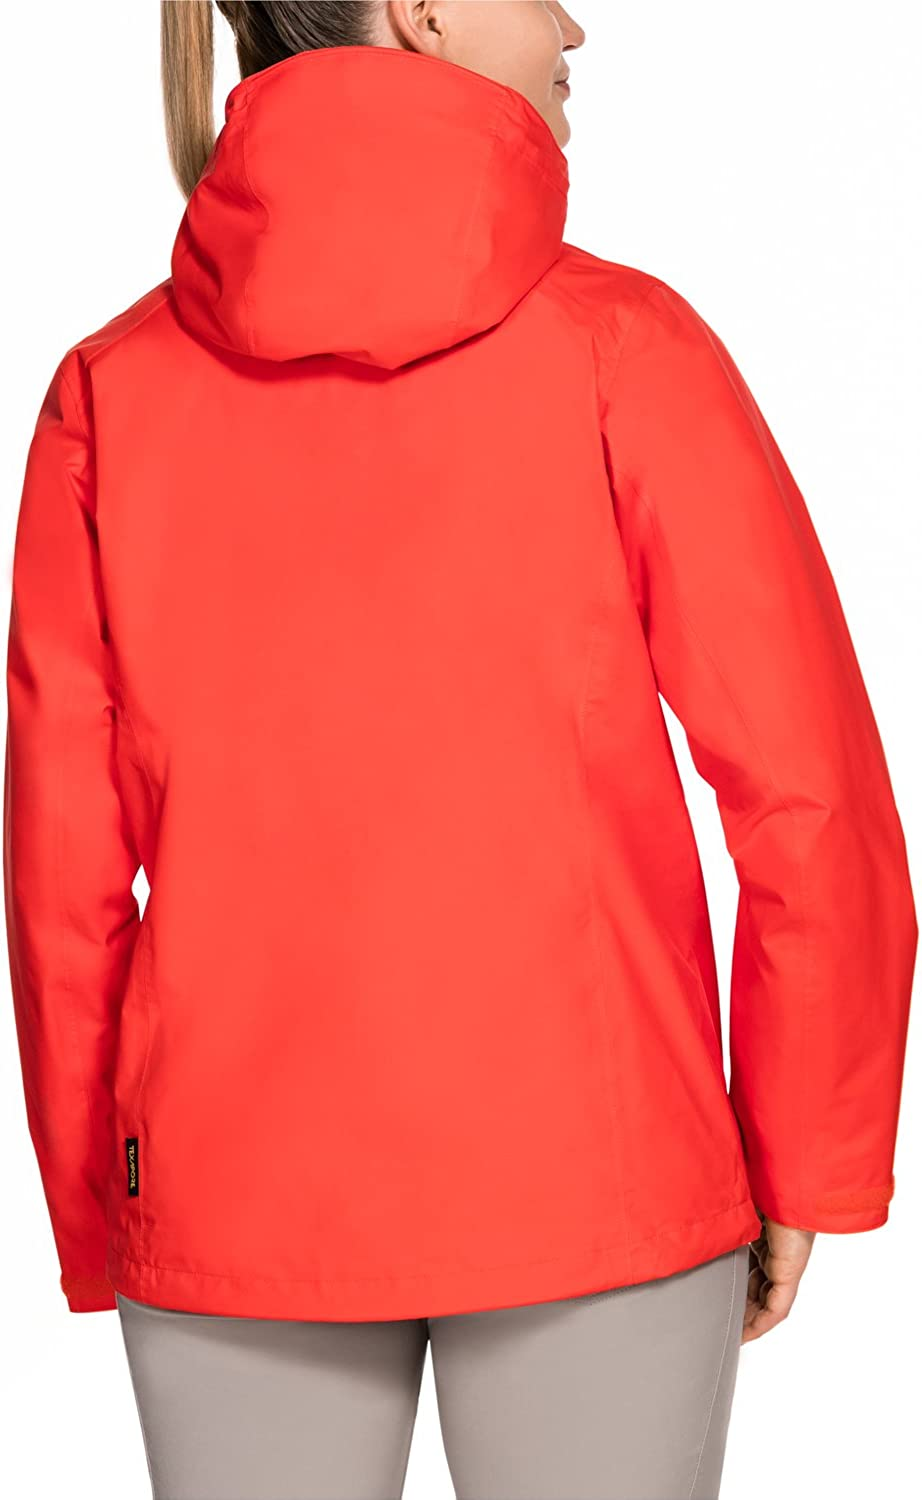 Jack Wolfskin Women's Seven Lakes Weather Protection Jacket lobster red